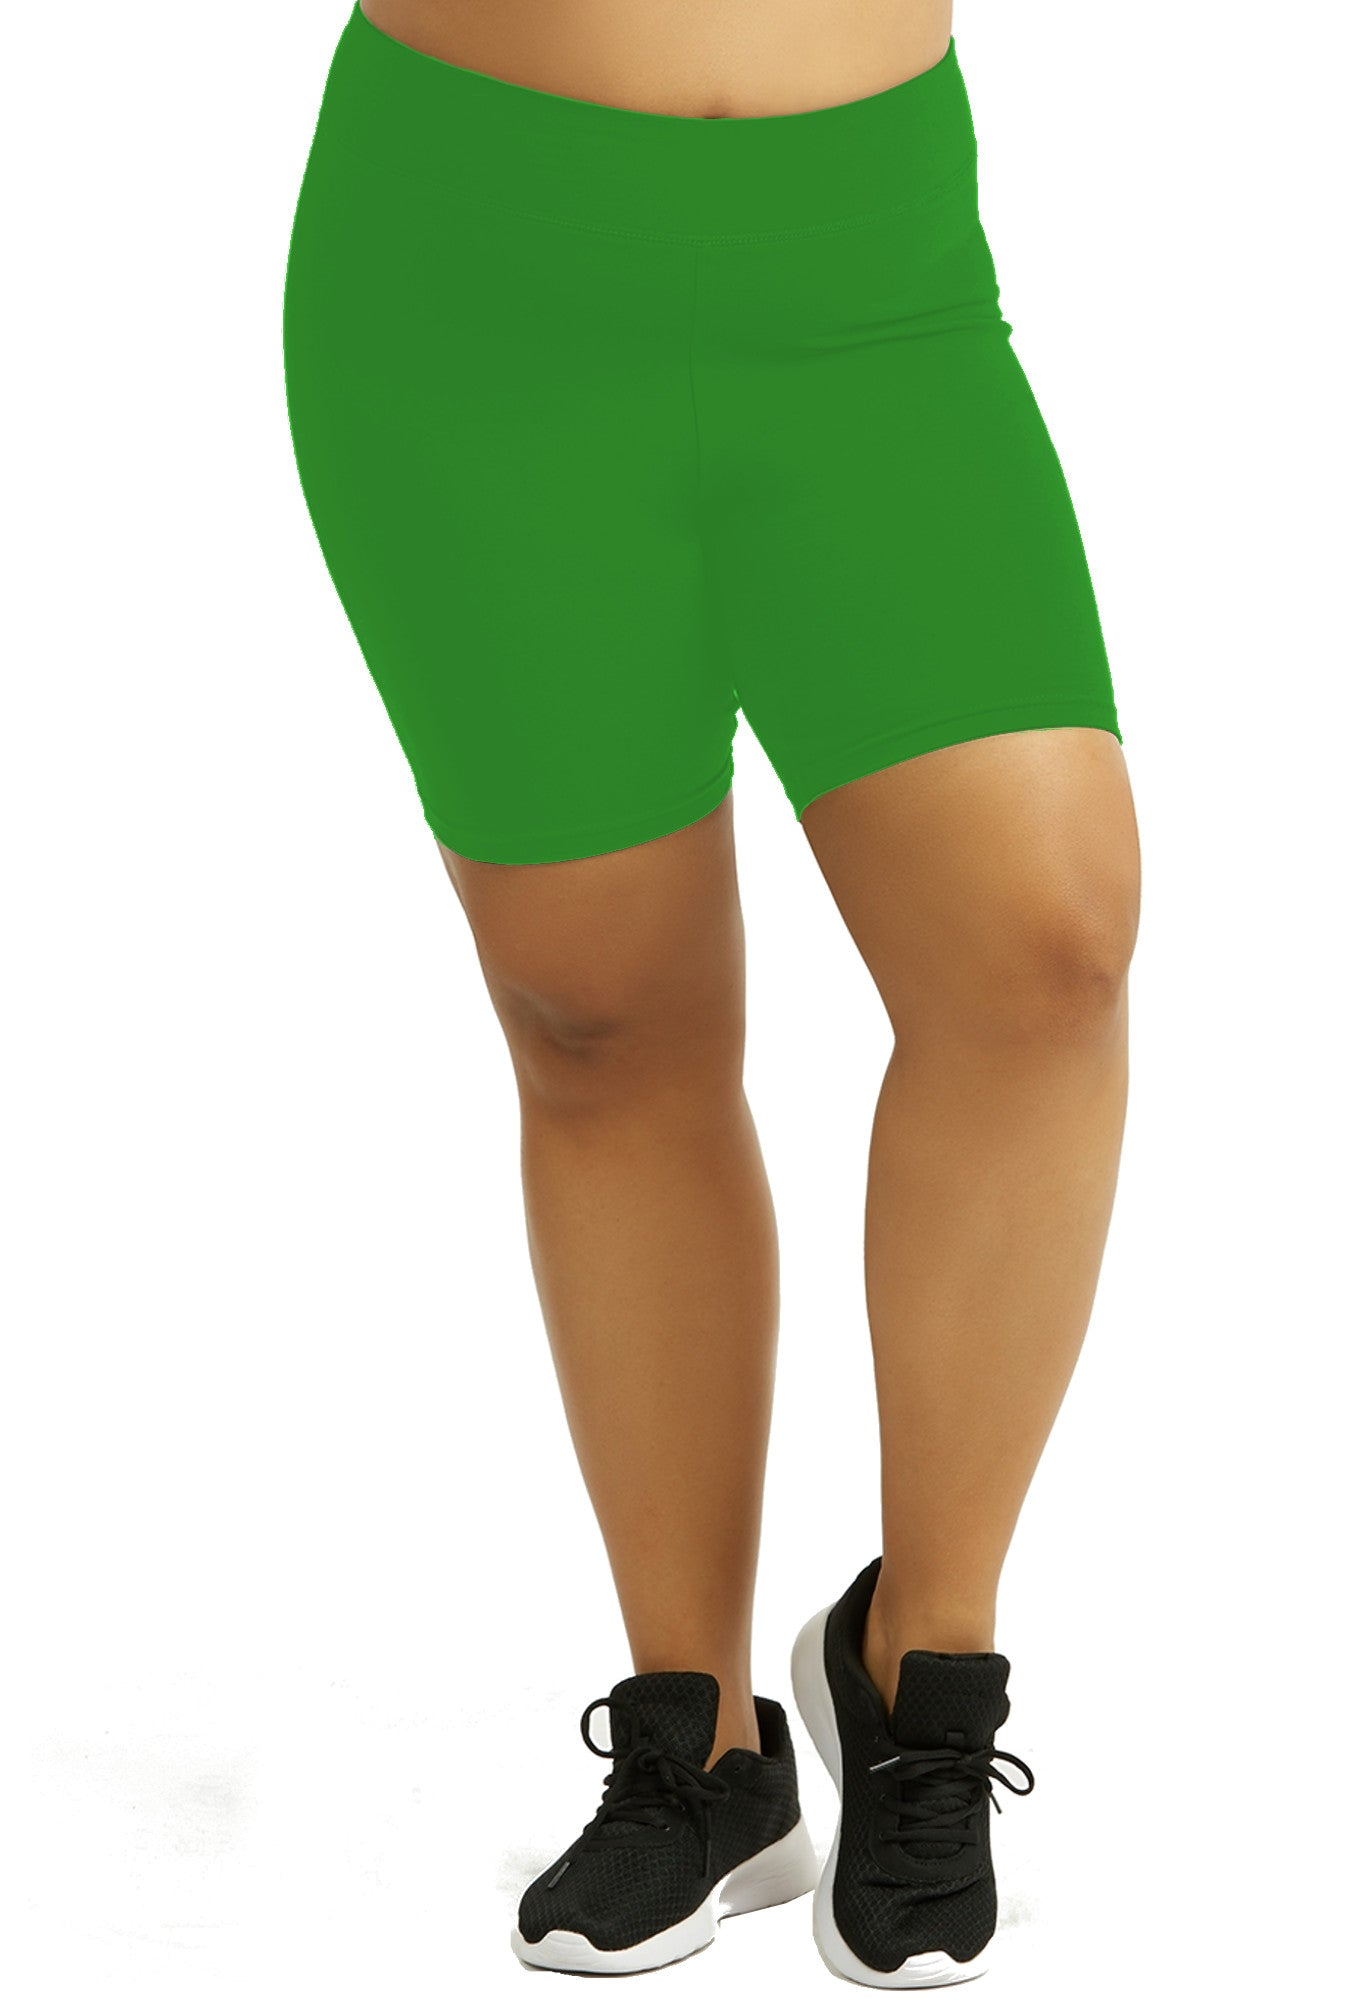 Womens Bike Shorts,Womens plus size shorts,Womens plus size activewear,Womens Kelly Green Bike Shorts,Womens plus size workout clothes